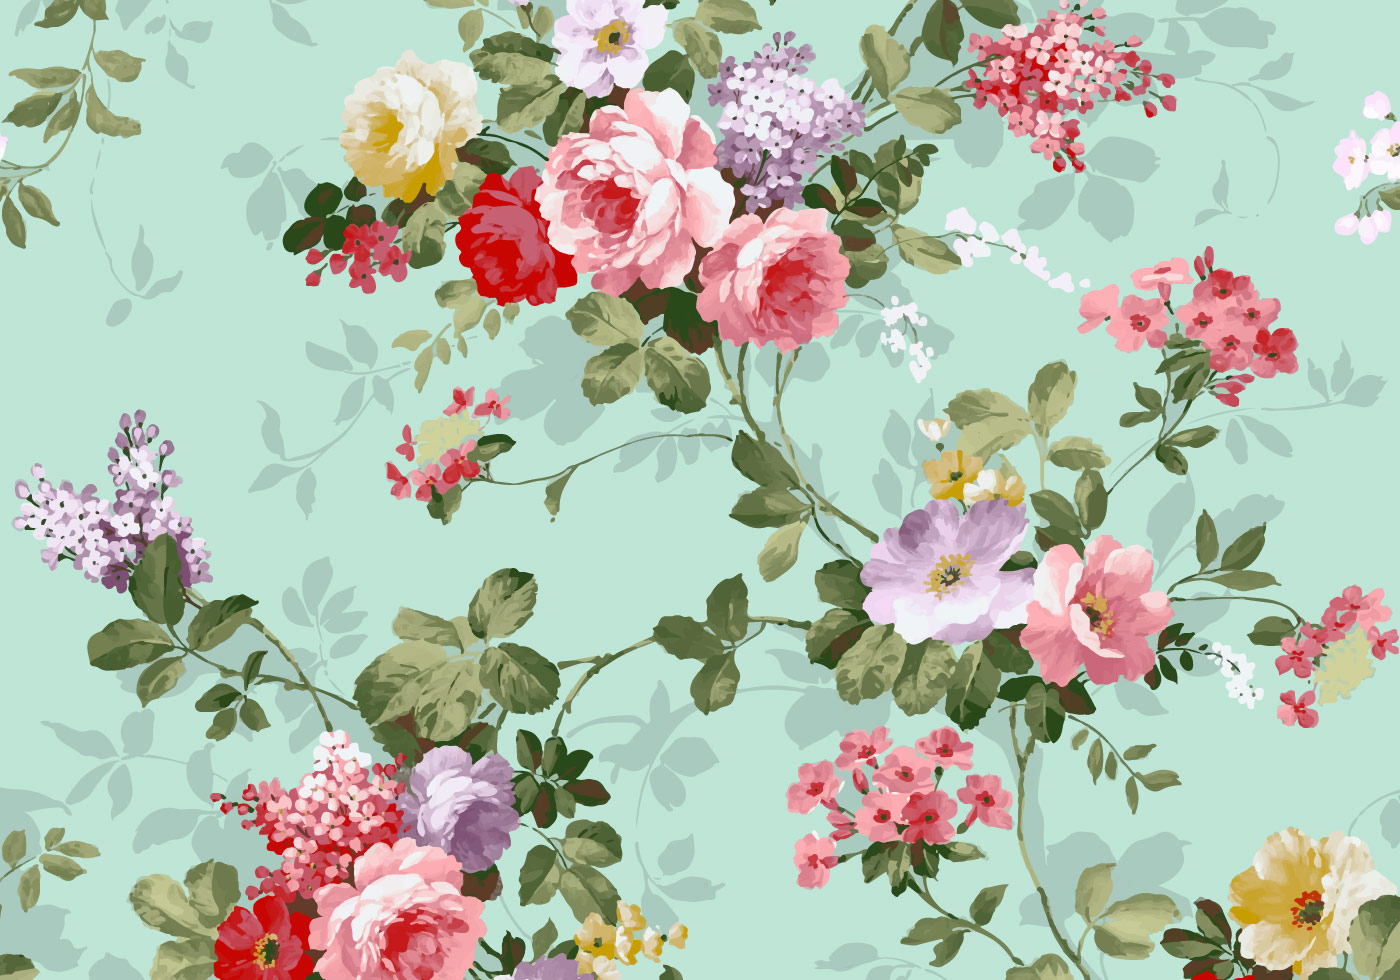 free vector beautiful vintage pink and red roses textile